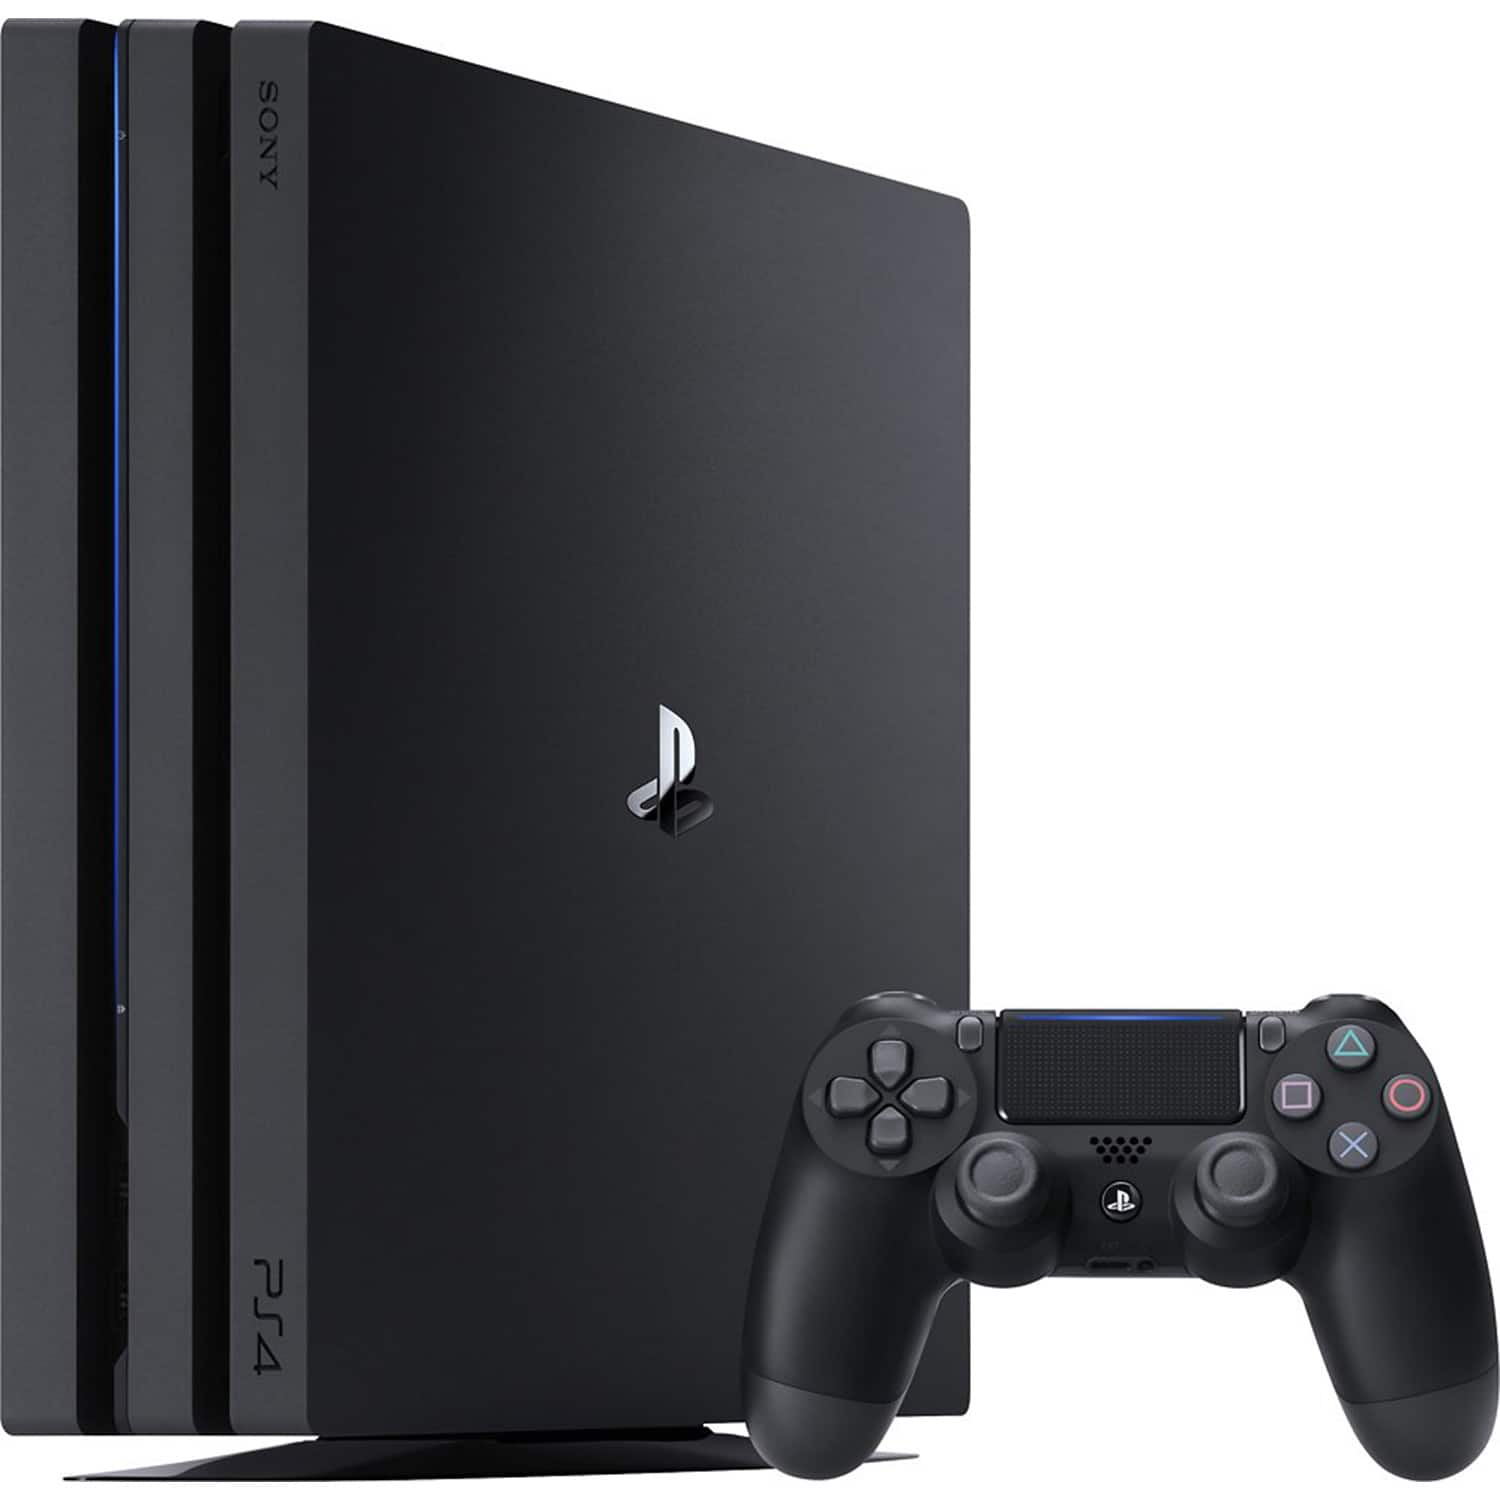 Sony Playstation 4 Pro 1TB Gaming Console $358 + FS